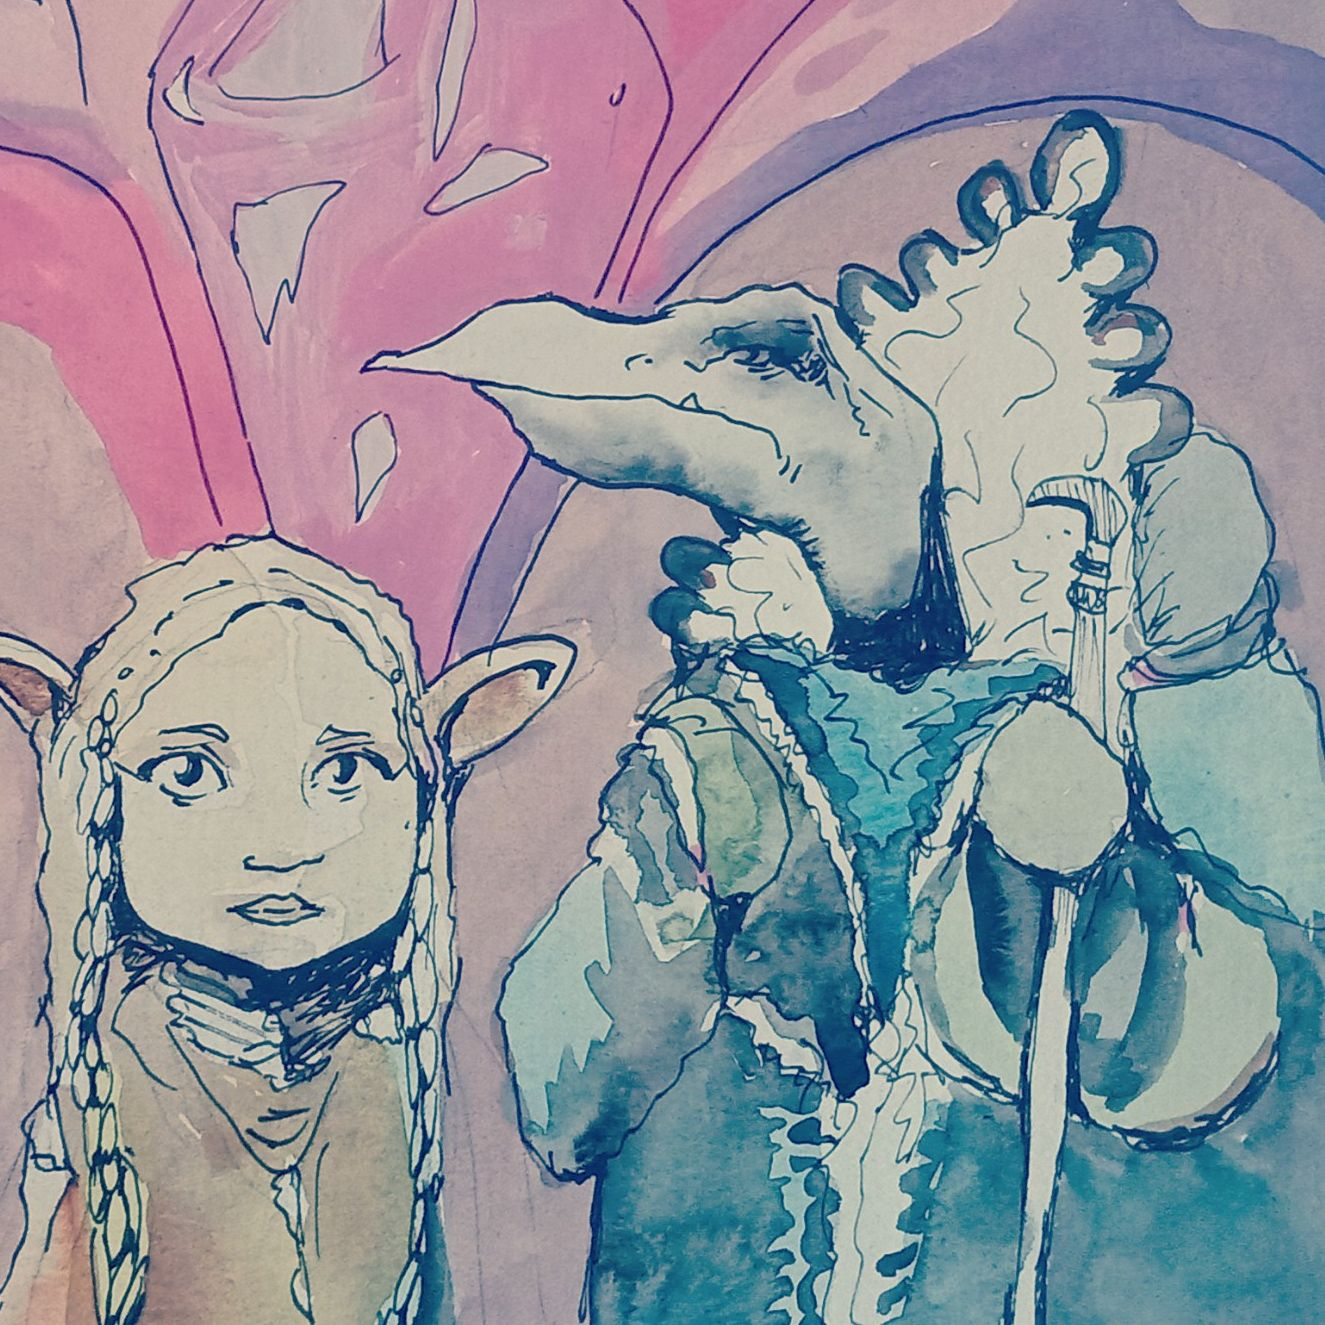 Illustration | Dark Crystal Labyrinth Goblins Faeries | 10-13 years